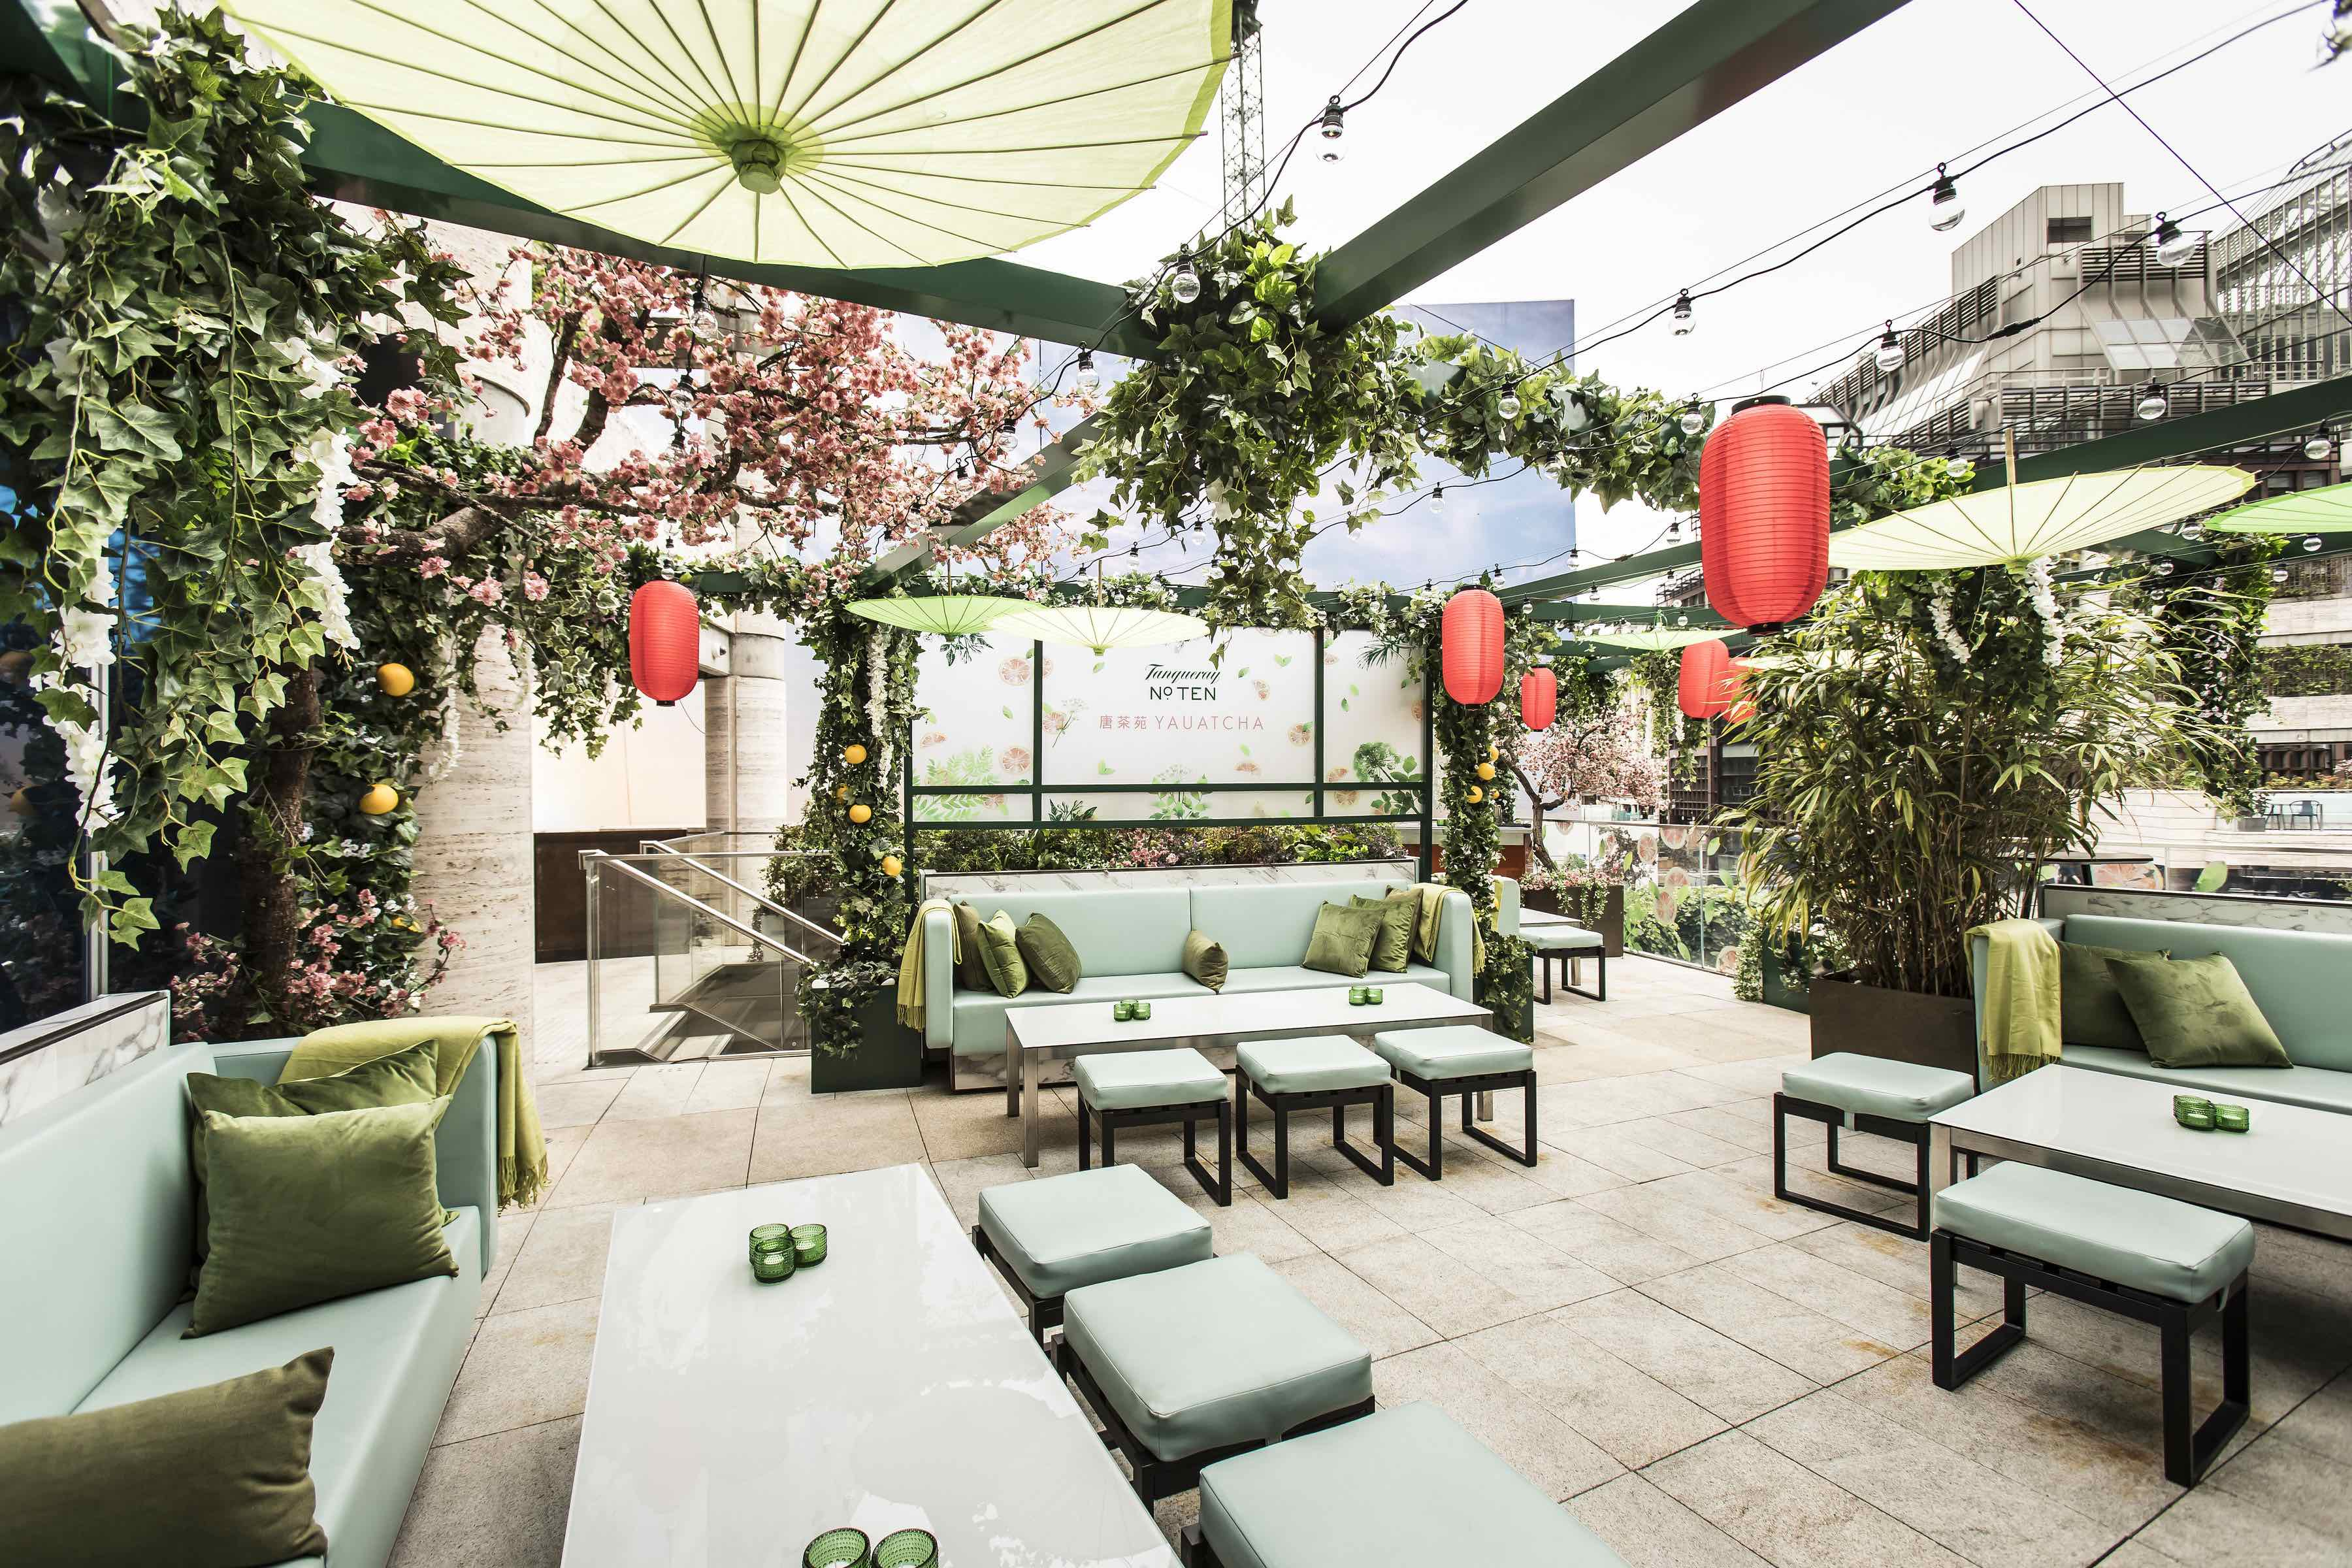 Where to drink outside in London, 5 Outdoor Terraces For Post Work Drinks in London, where to drink outside in London, outdoor terraces in london, outdoor places to drink in london, where to drink outside london